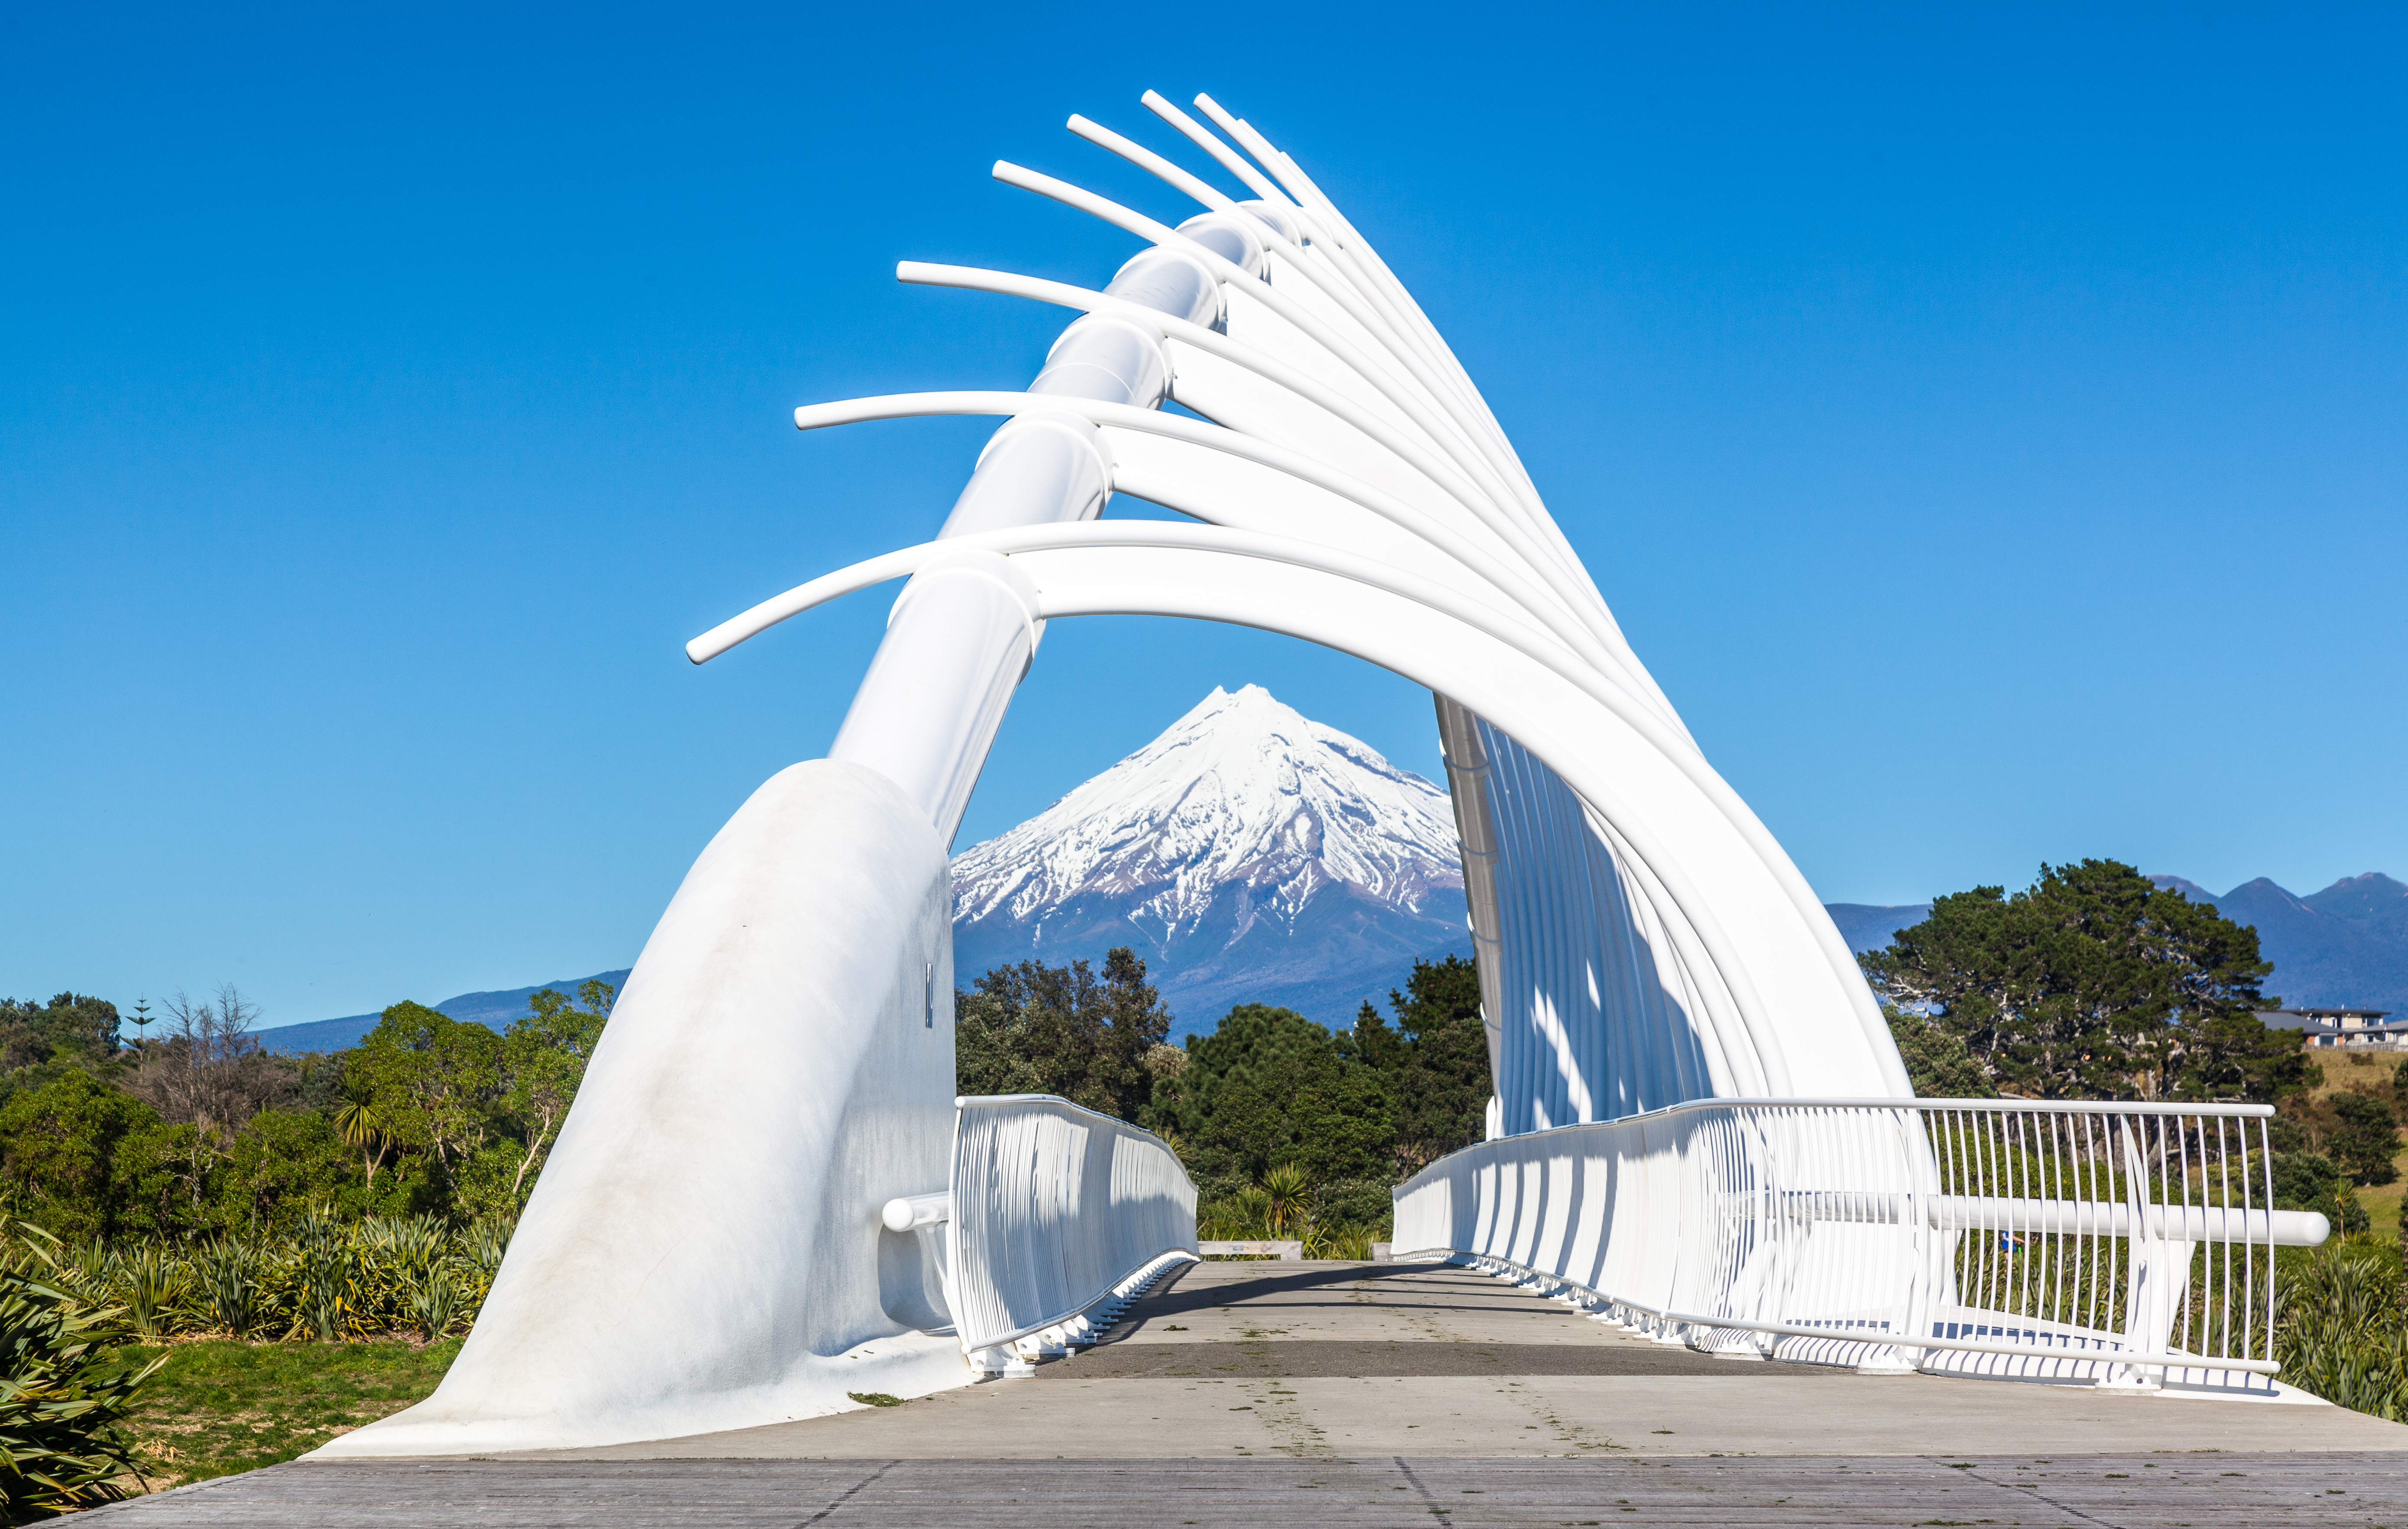 Things to see in New Plymouth - What to see in New Plymouth